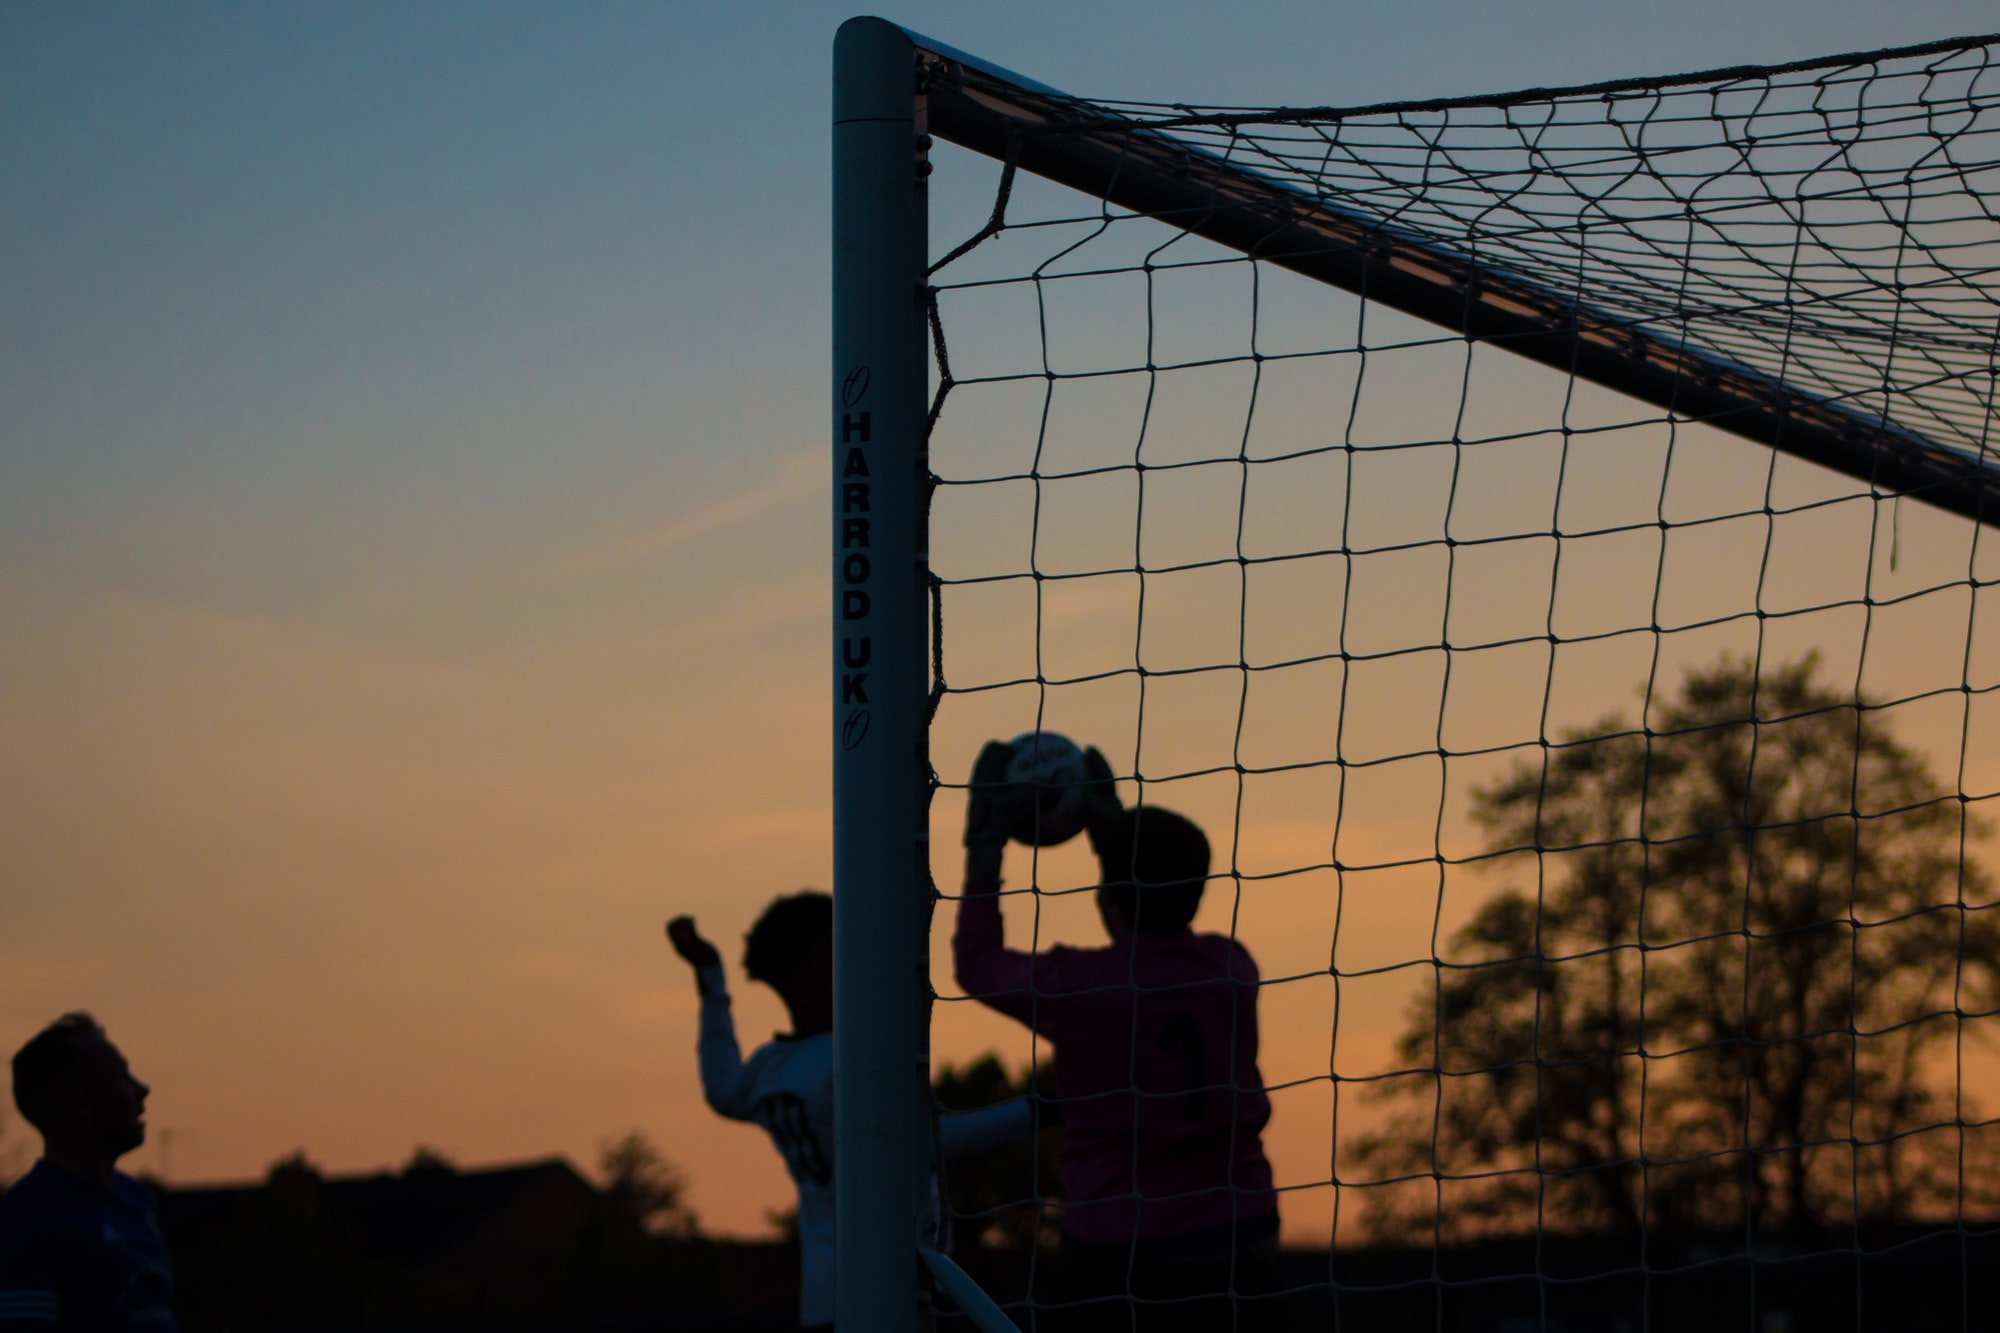 Silhouette goalkeeper catching the ball